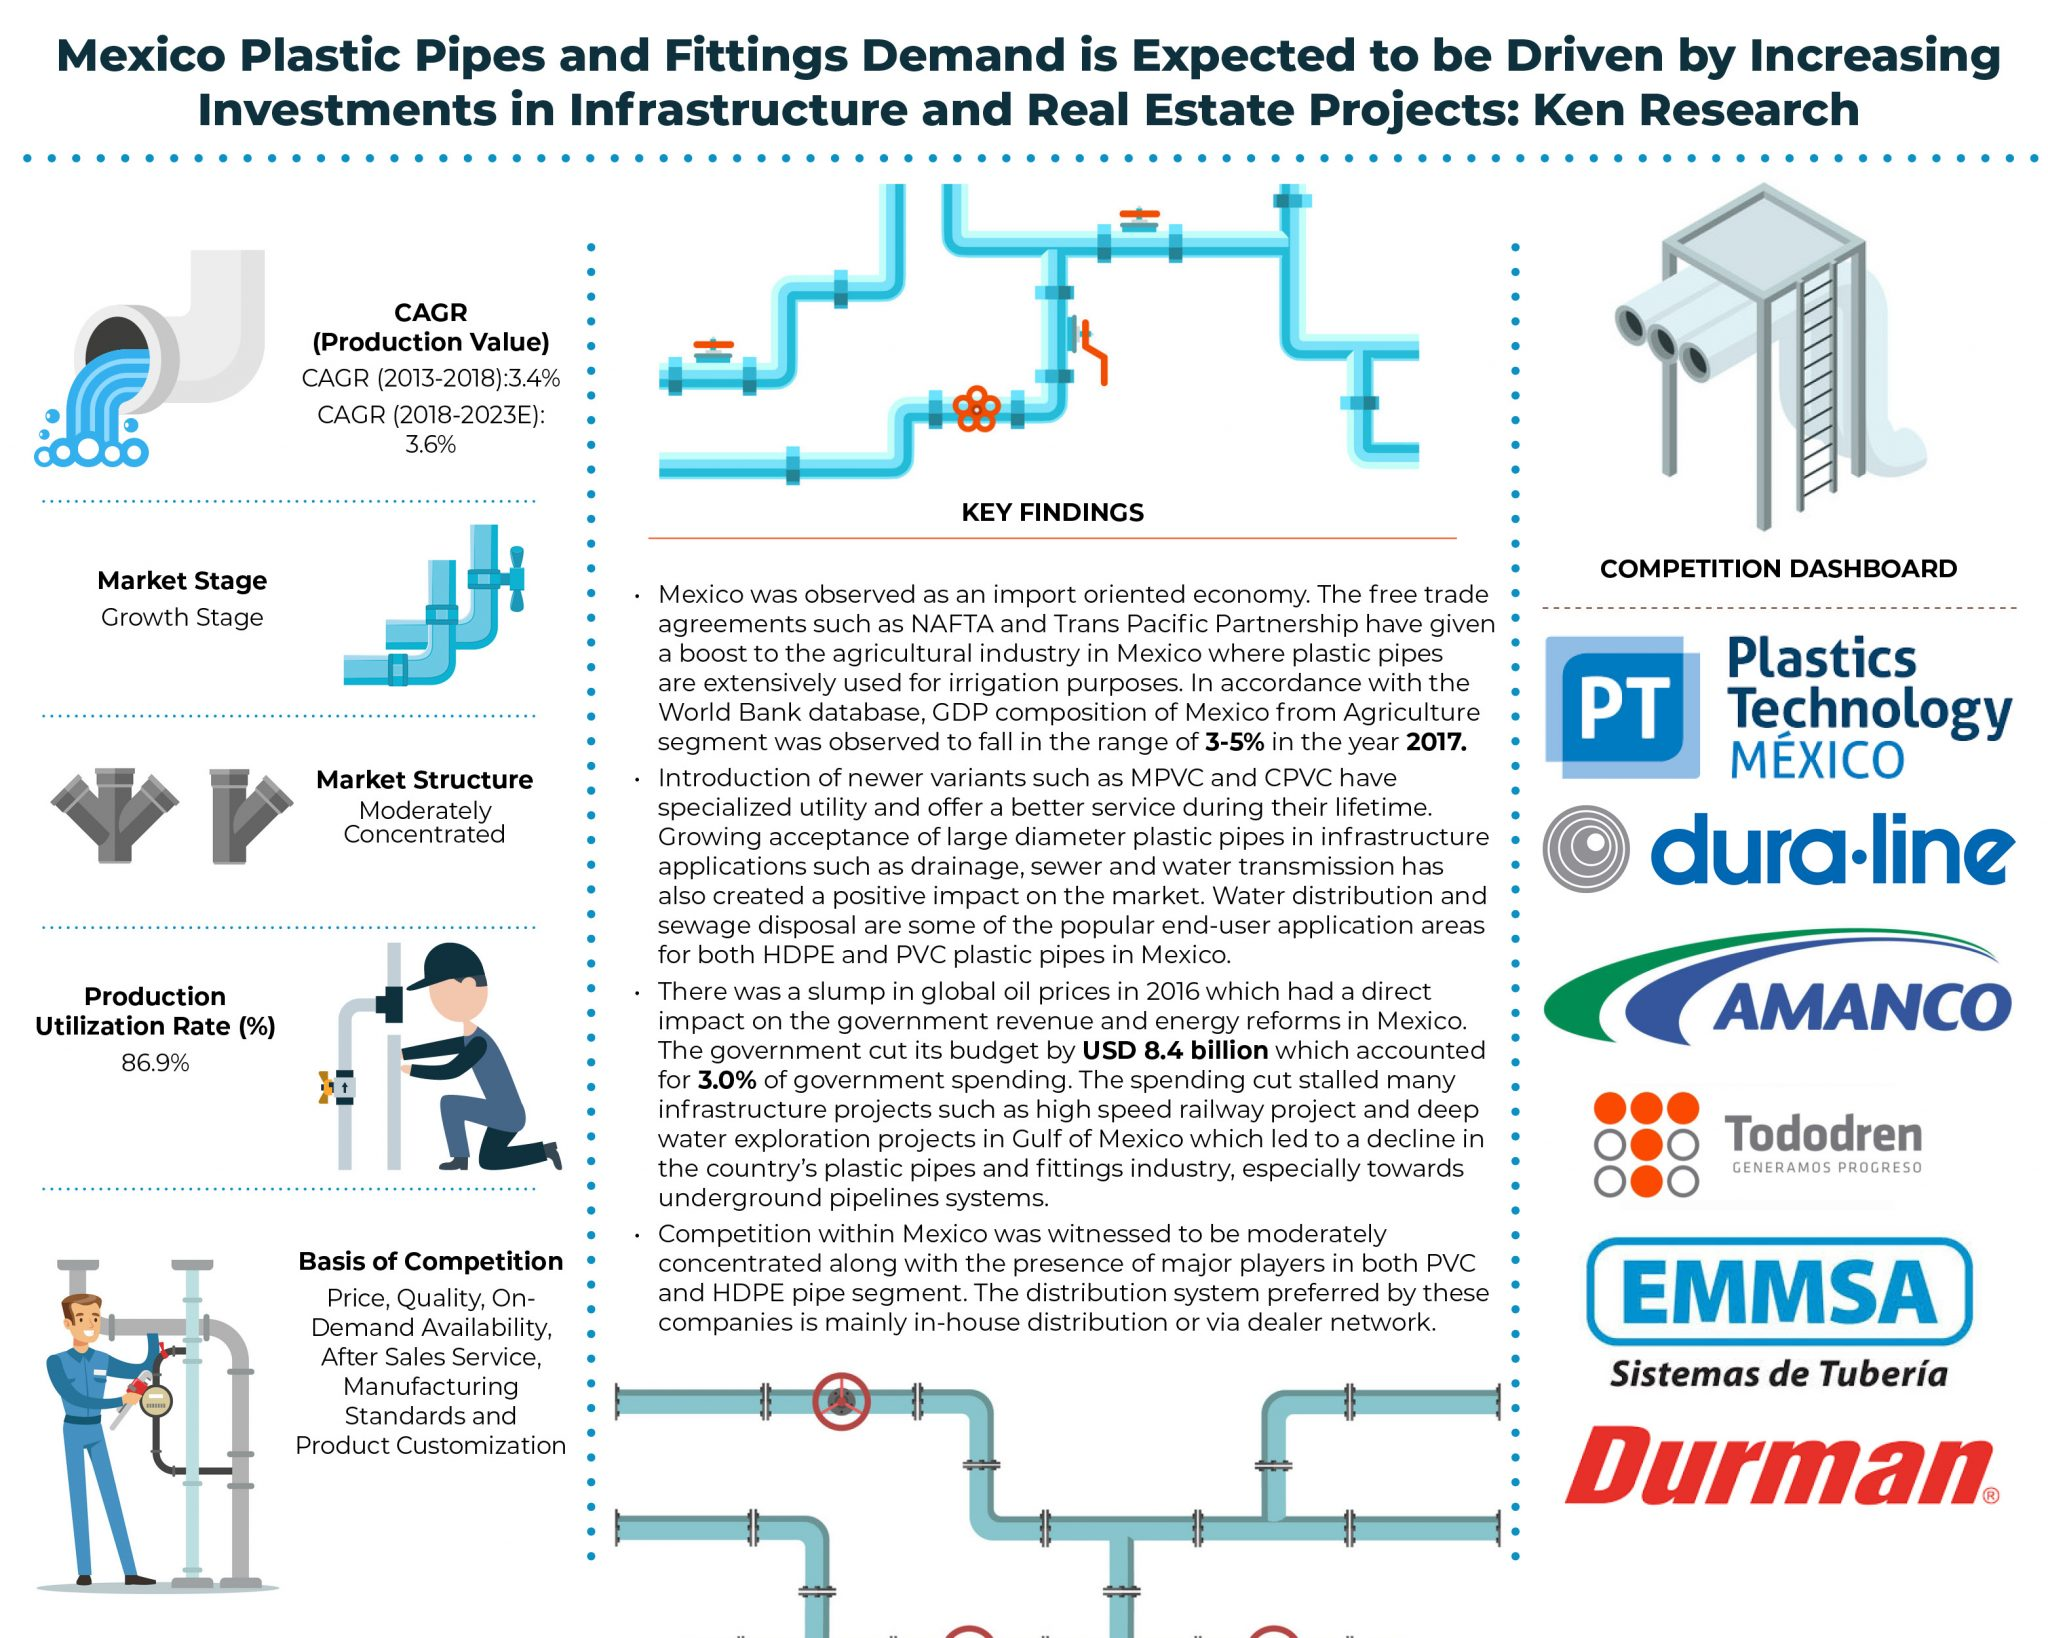 Mexico Plastic Pipes and Fittings Market